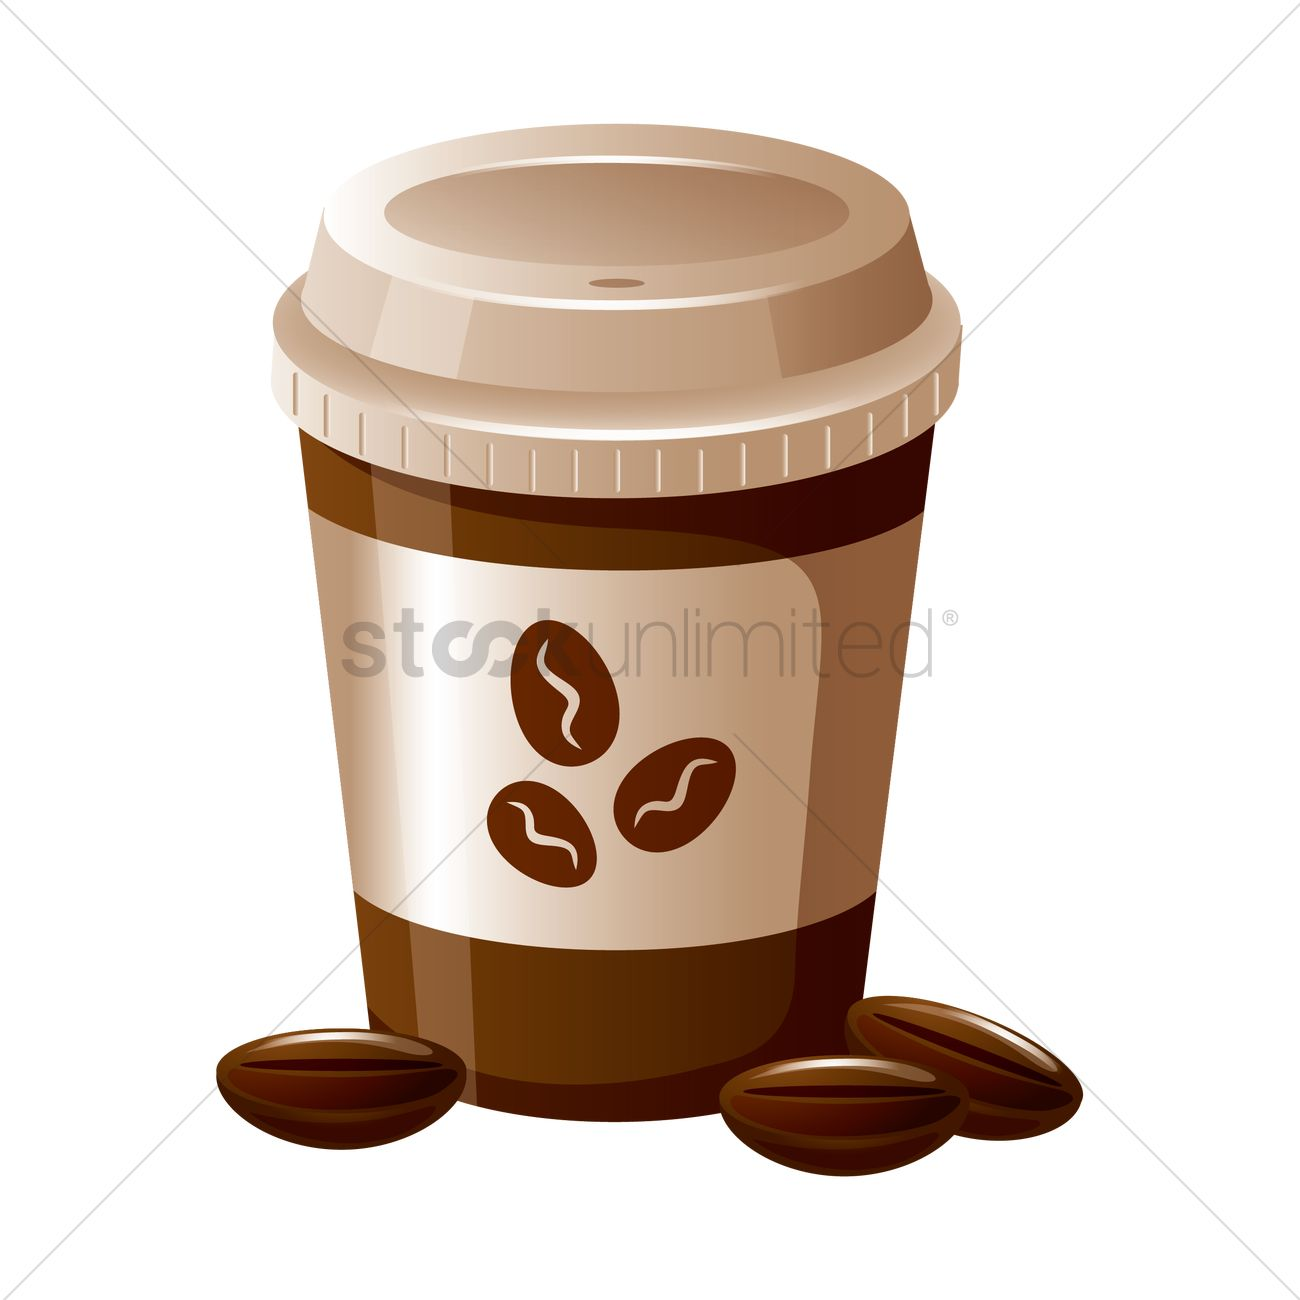 Coffee cup vector free - Takeaway Coffee Cup Vector Graphic